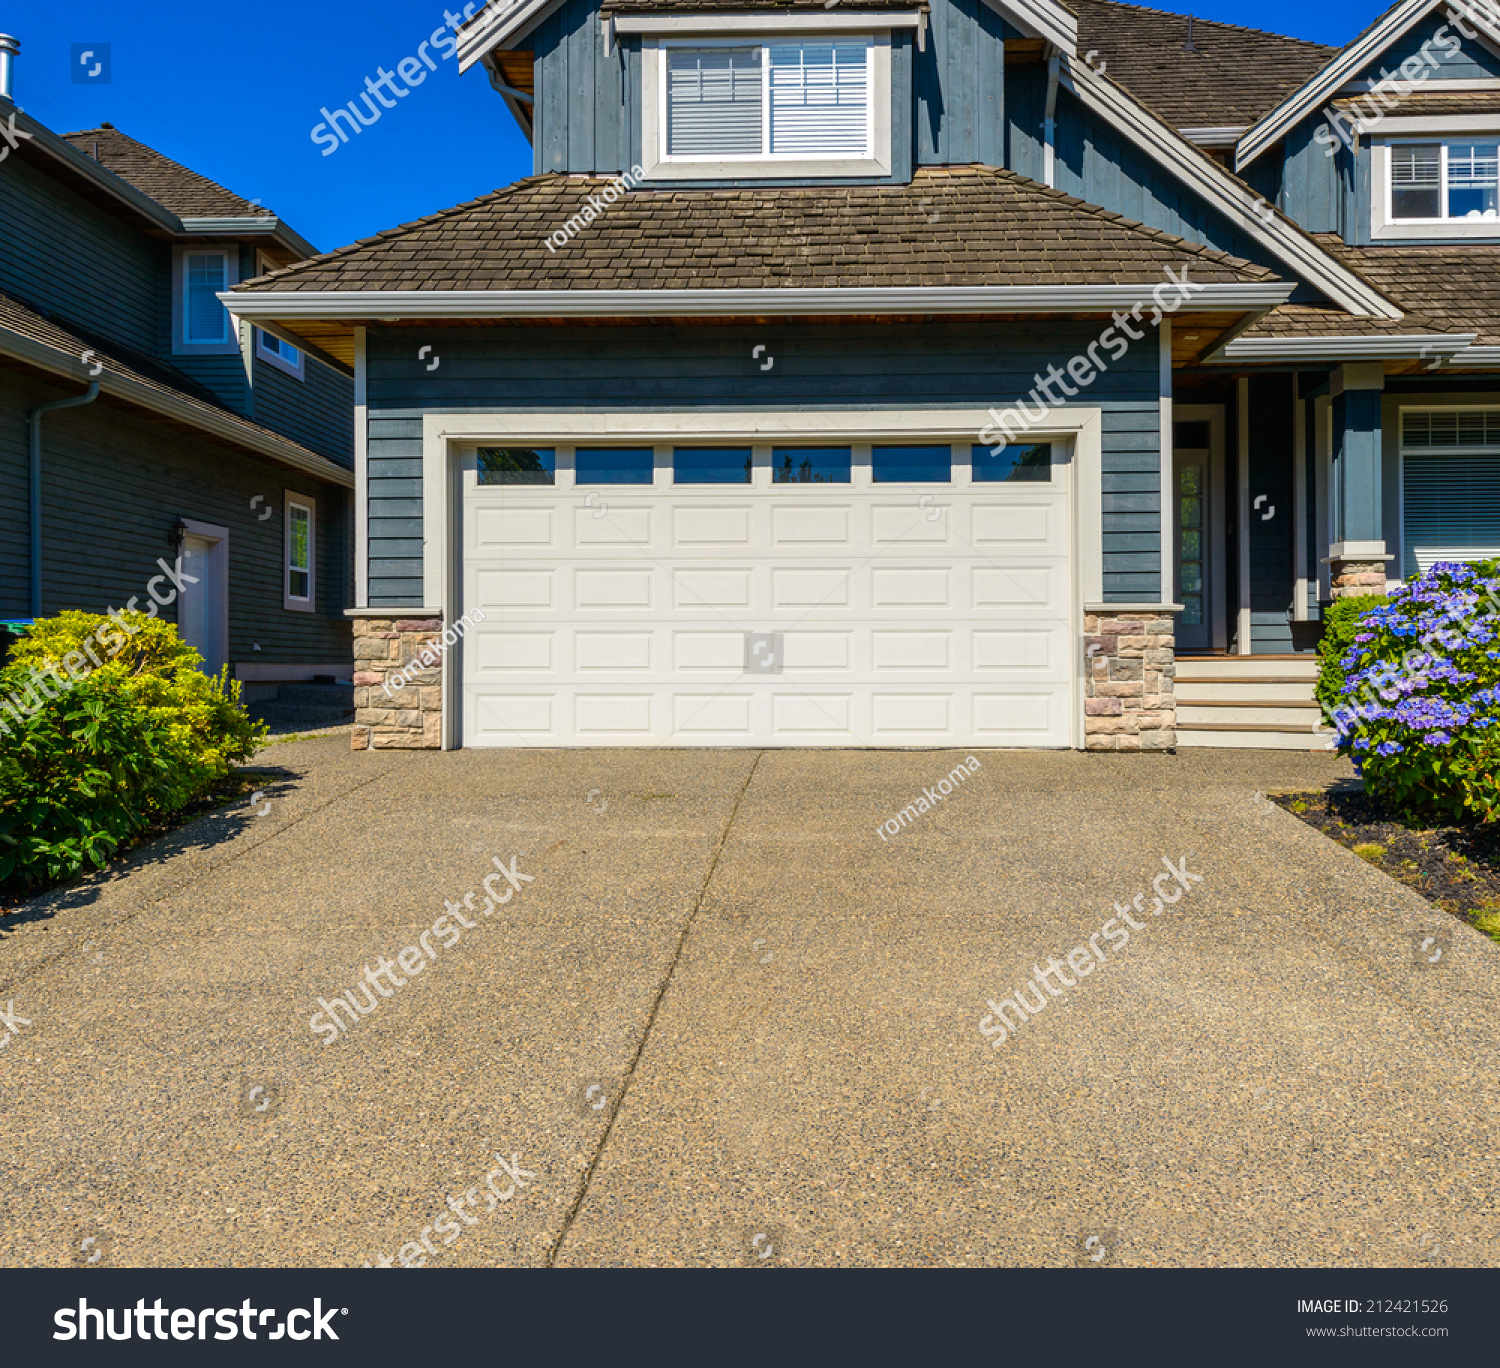 Double doors garage wide long driveway stock photo for How wide should a garage be